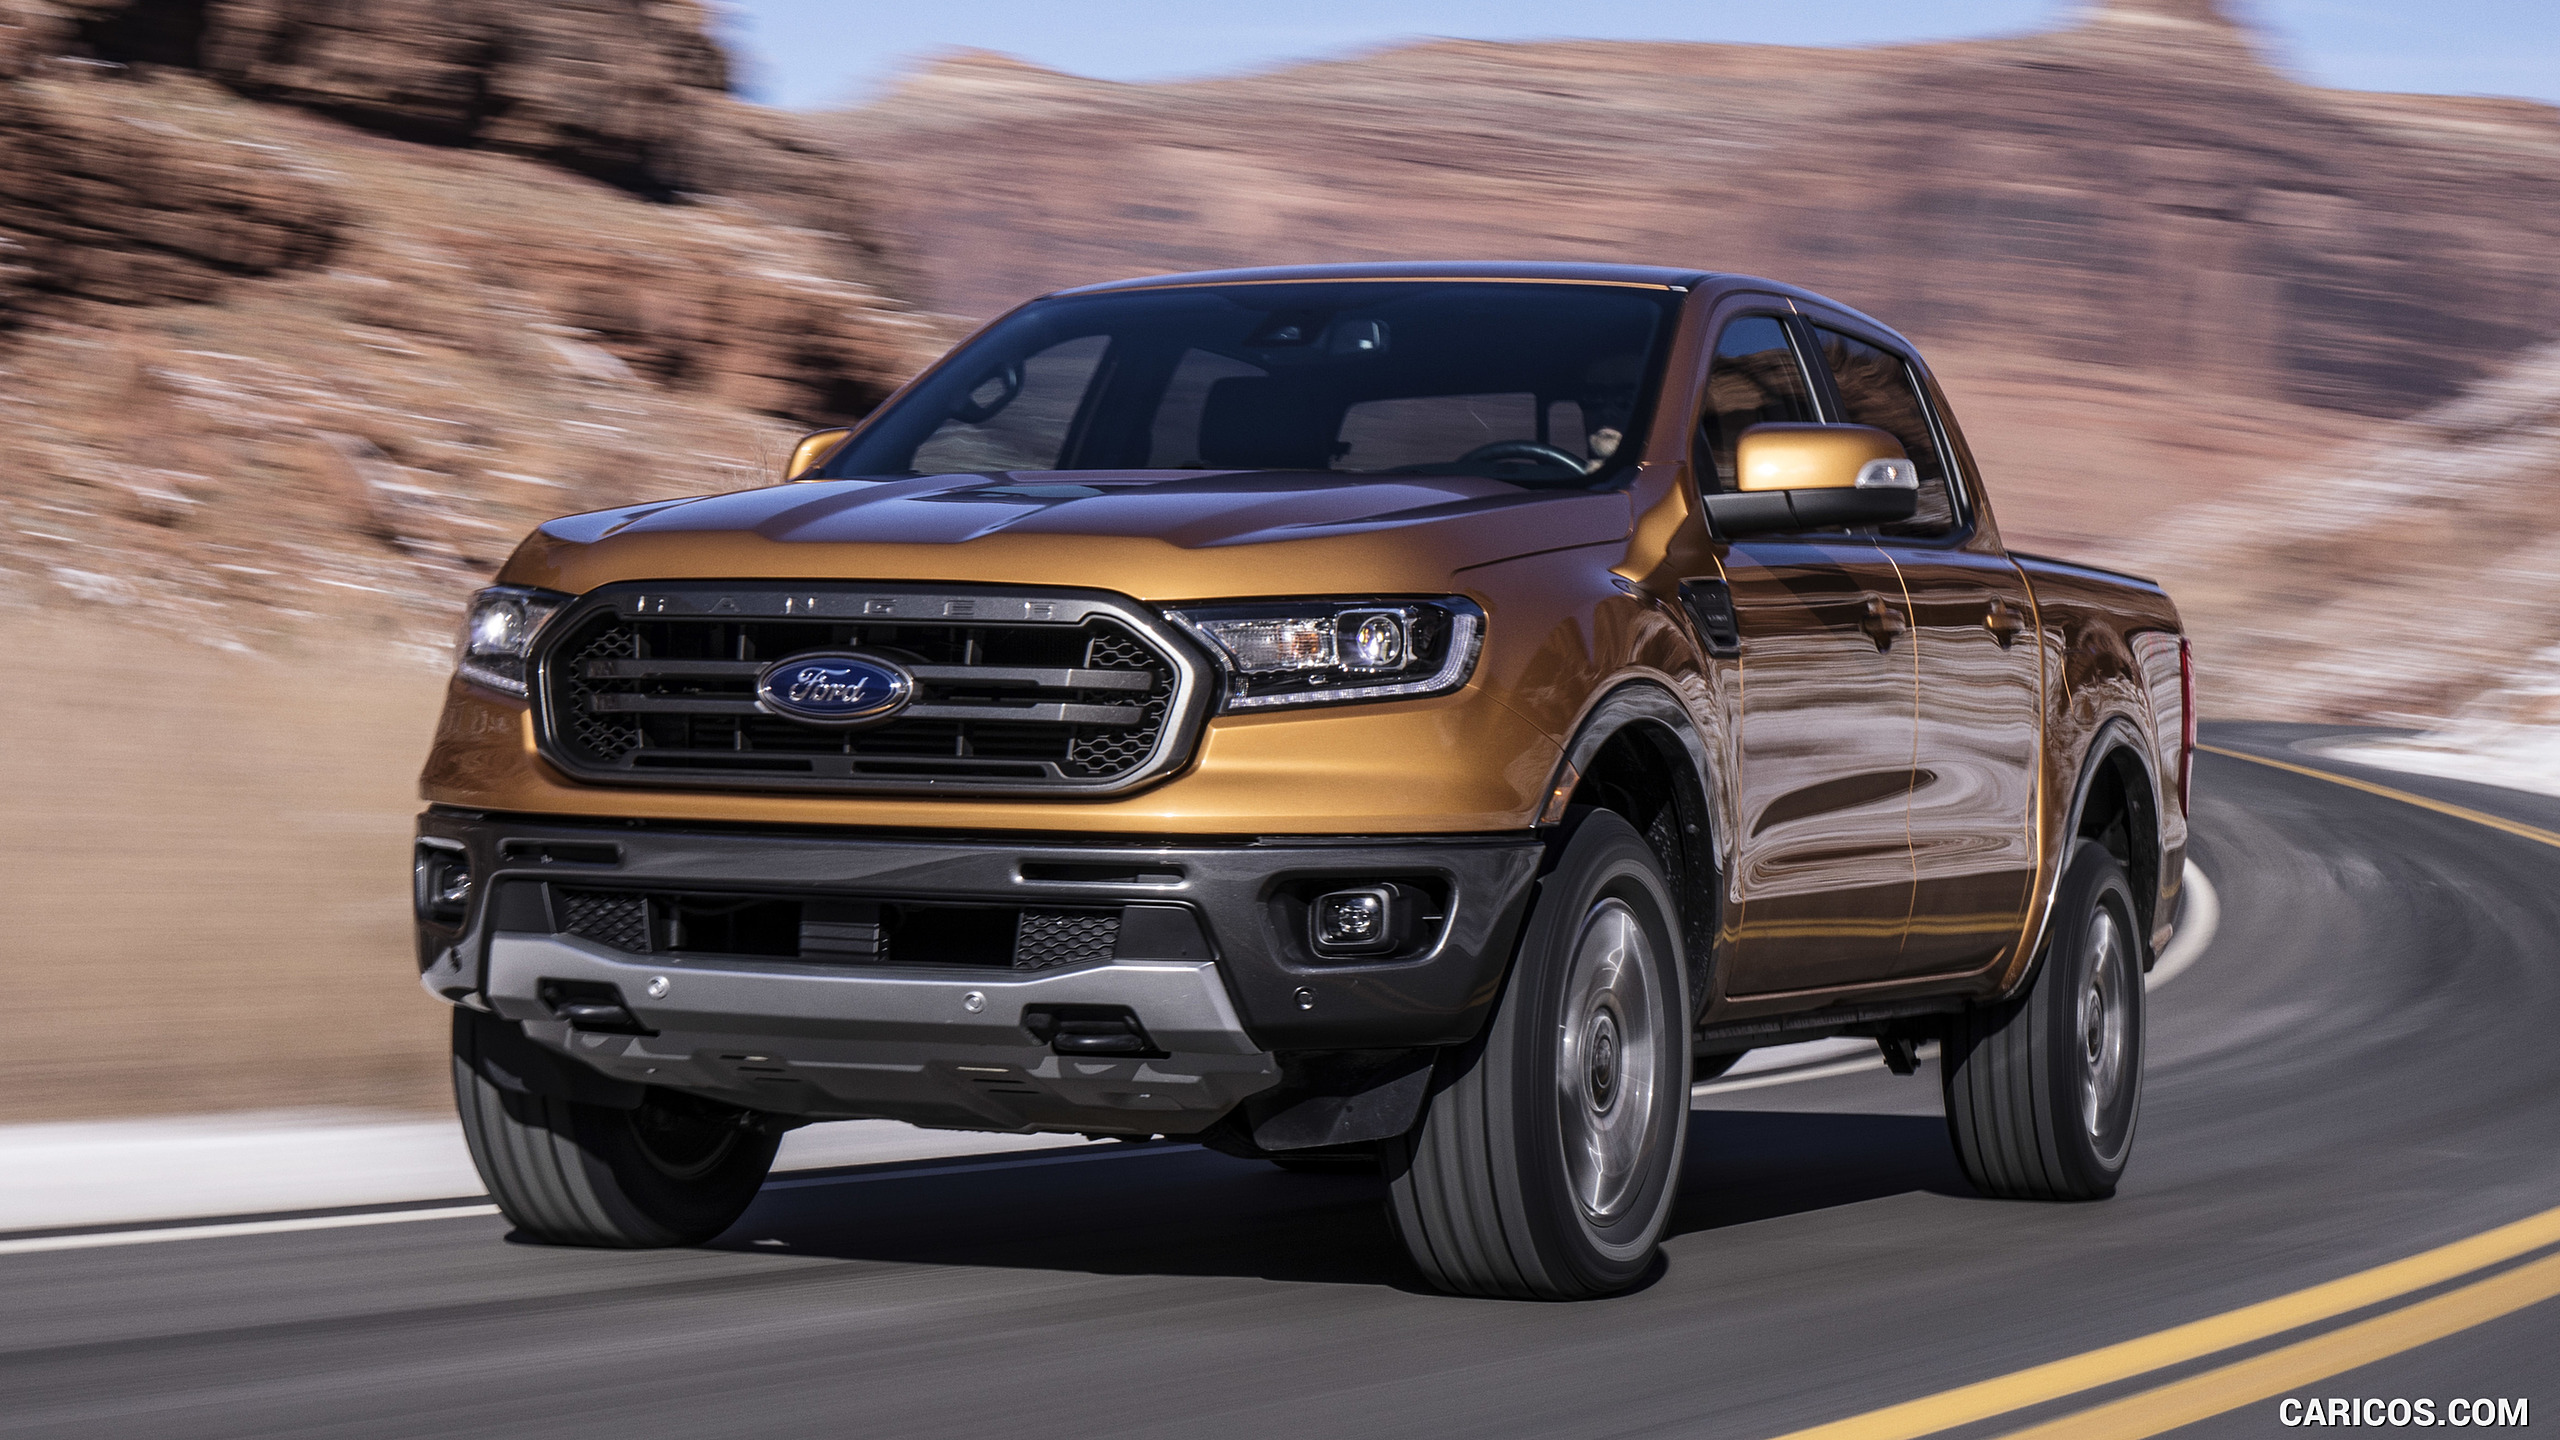 2560x1440 - Ford Ranger Wallpapers 12